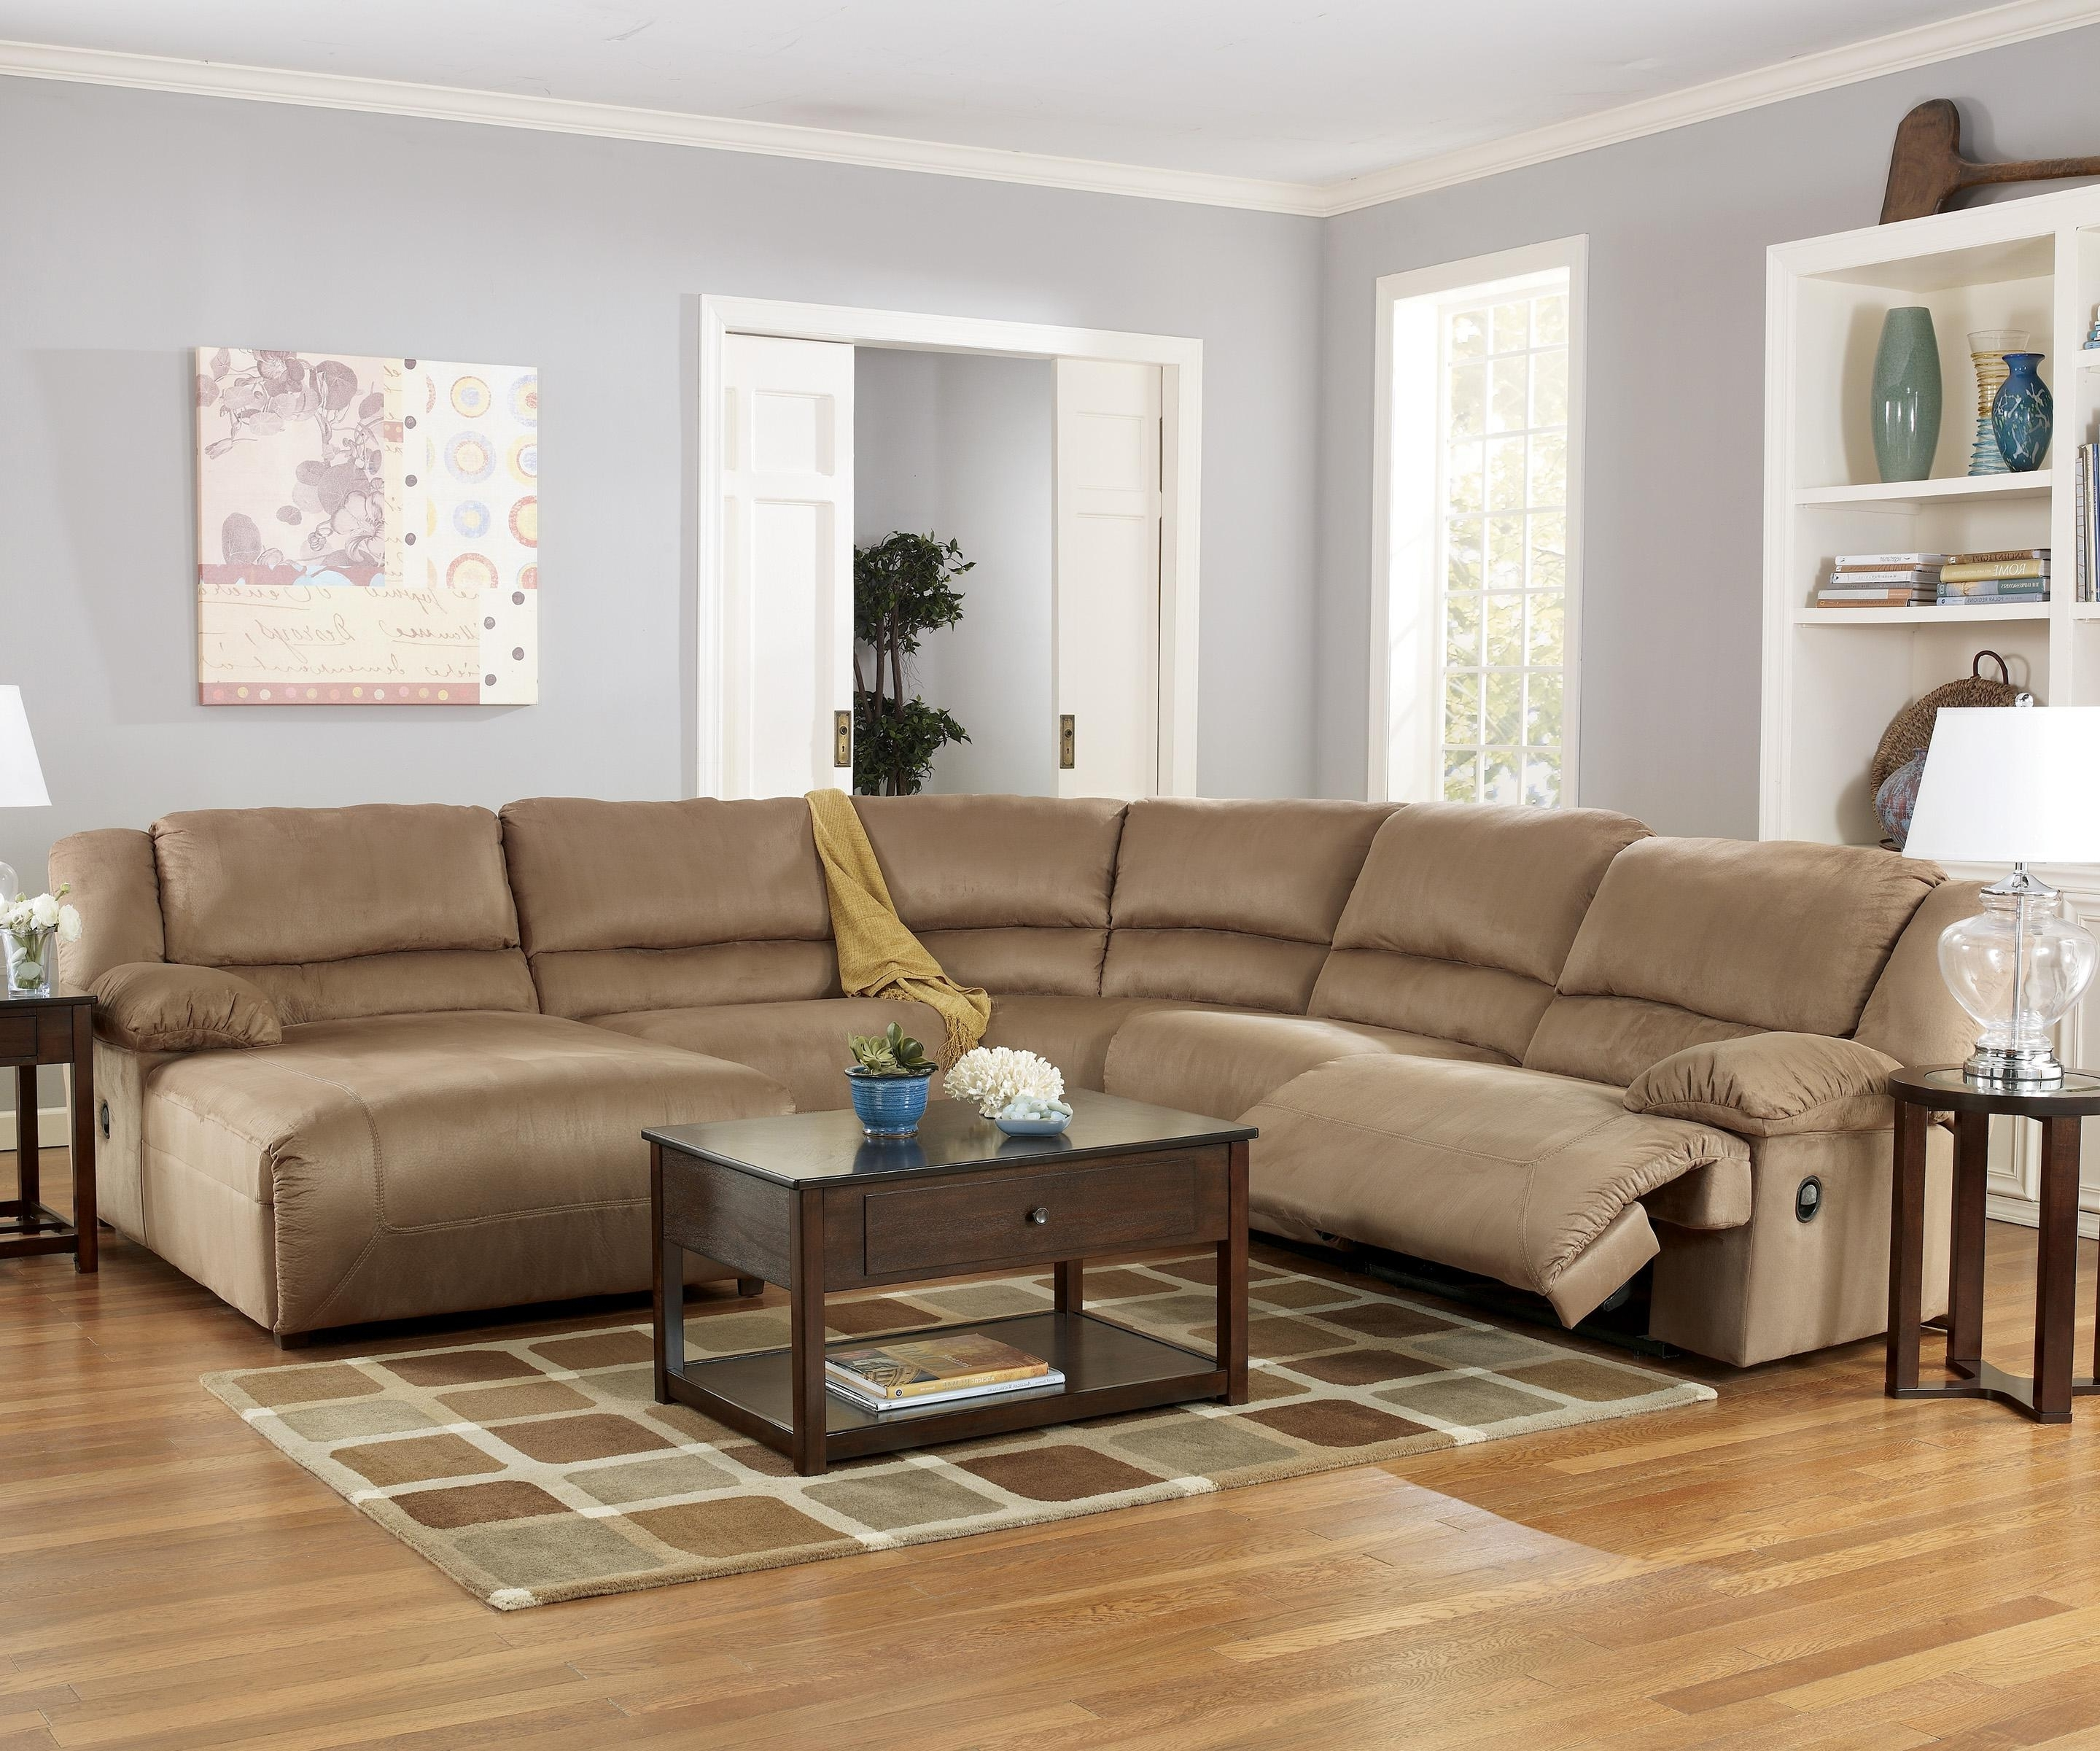 El Paso Tx Sectional Sofas With Regard To Fashionable Furniture: Ashley Furniture San Antonio Tx (View 11 of 15)